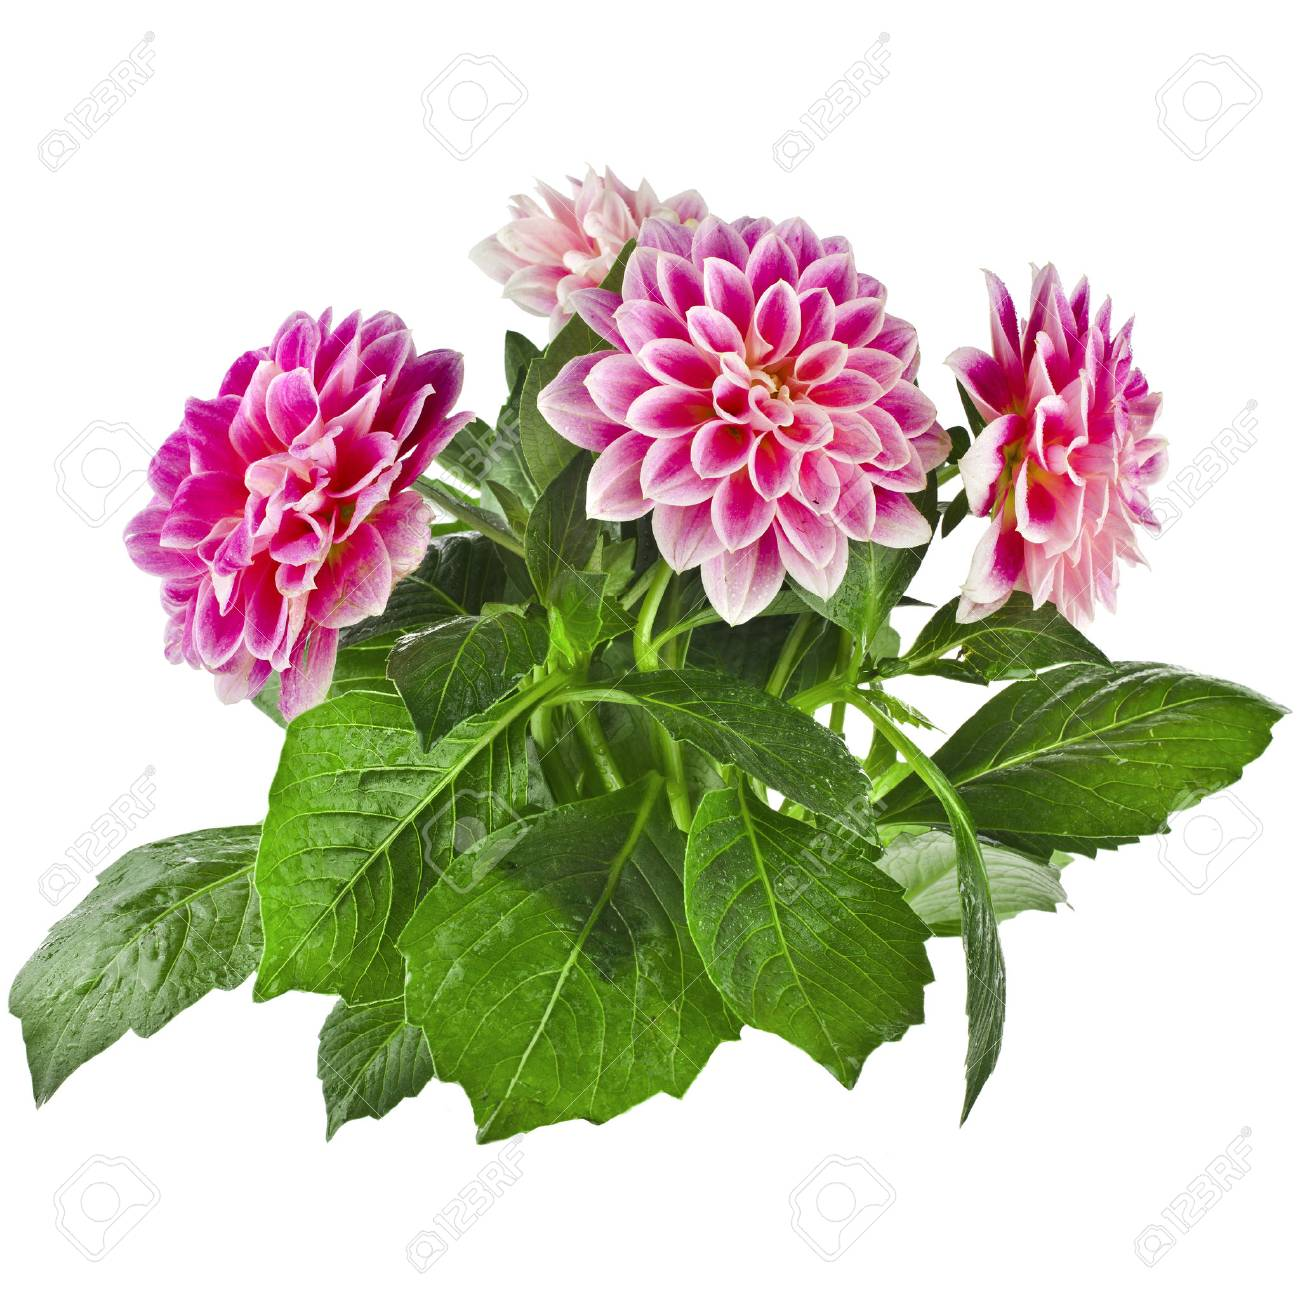 Pink dahlia flowers bouquet isolated on white background stock photo pink dahlia flowers bouquet isolated on white background stock photo 30058695 izmirmasajfo